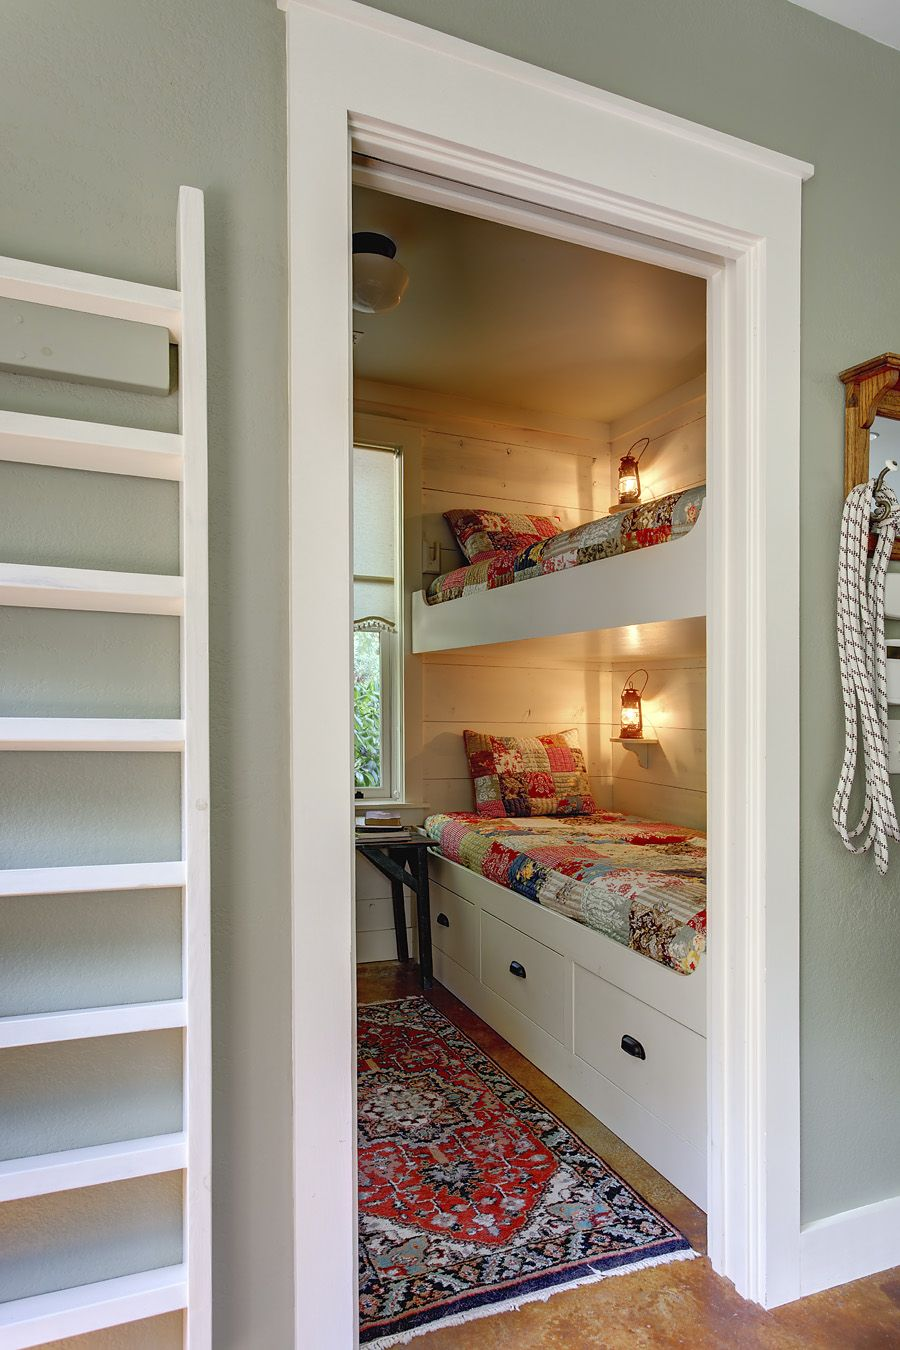 Best 25 lake cottage ideas on pinterest lake cottage - Best beds for small rooms ...